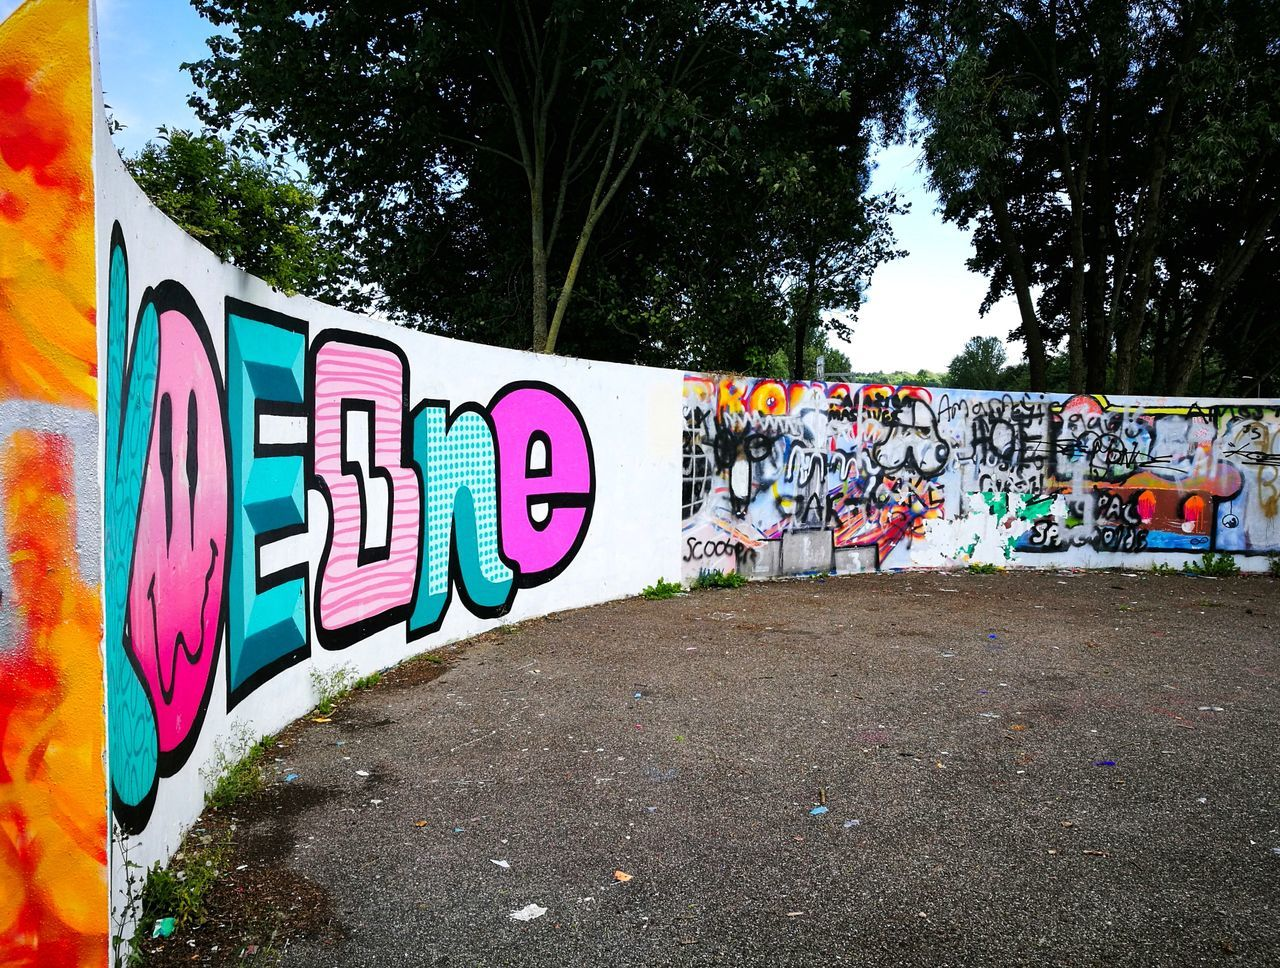 Graffiti No People Close-up Outdoors Day Urban Streetphotography Street Art Wadebridge Pink Pink And Blue Bright Colors Huaweiphotography Curve Wall Paint Writing On The Walls